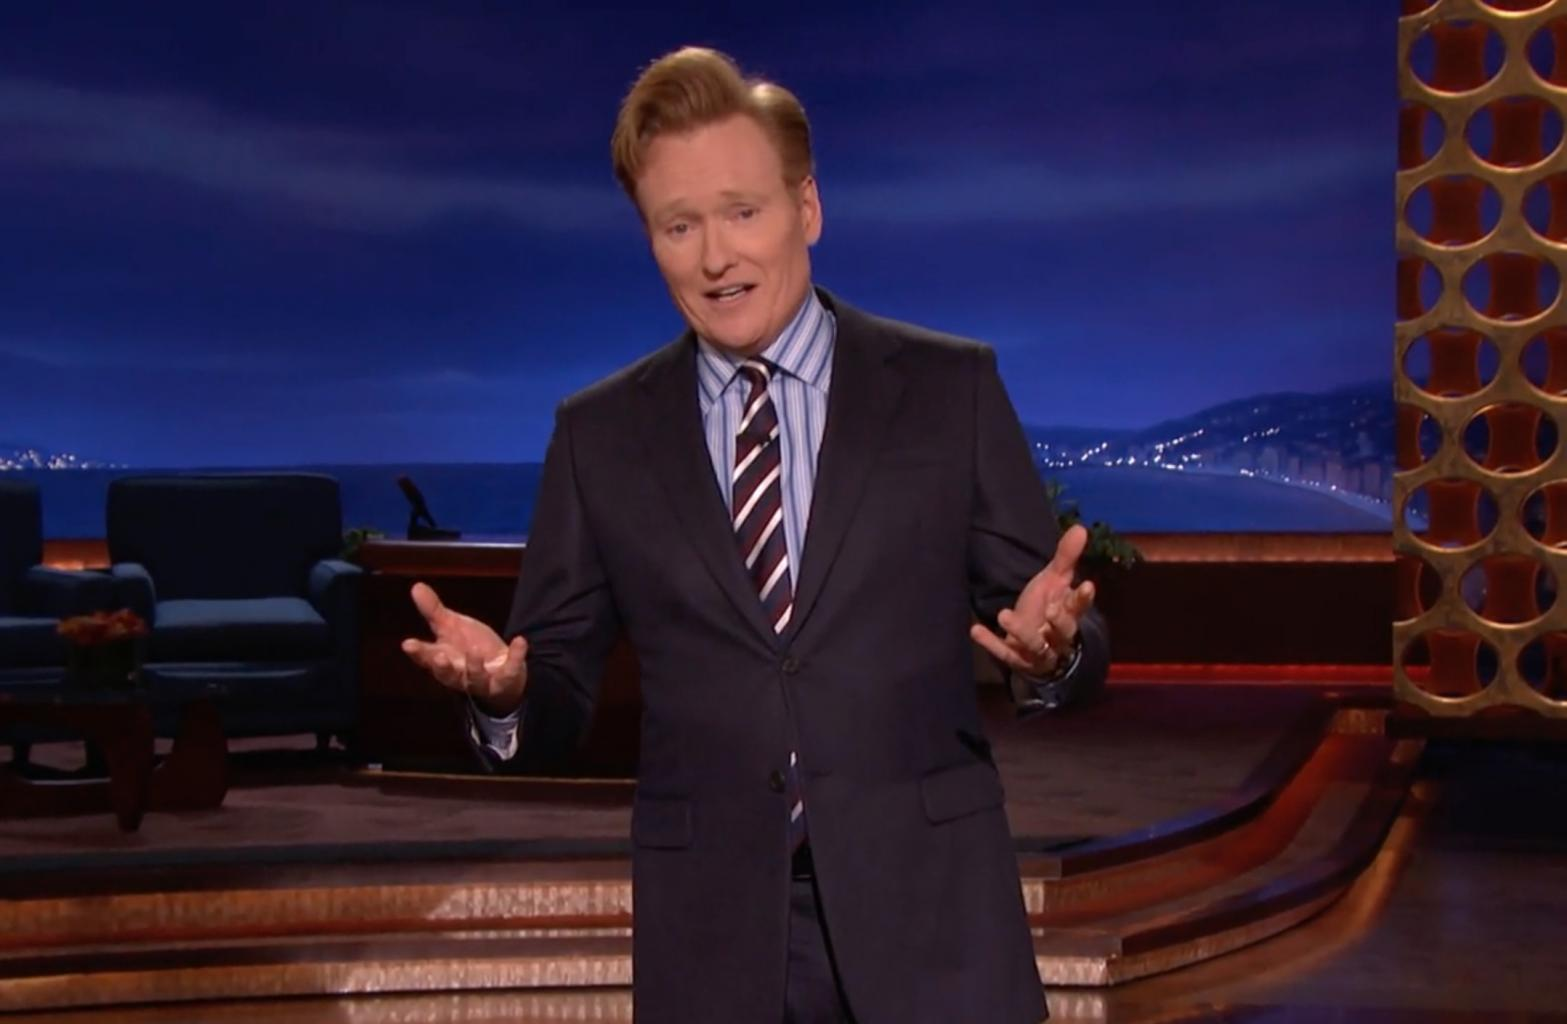 Conan O'Brien Talks Election Results: Democracy Means 'We Get To Pick Who's Going To Ruin Our Country'